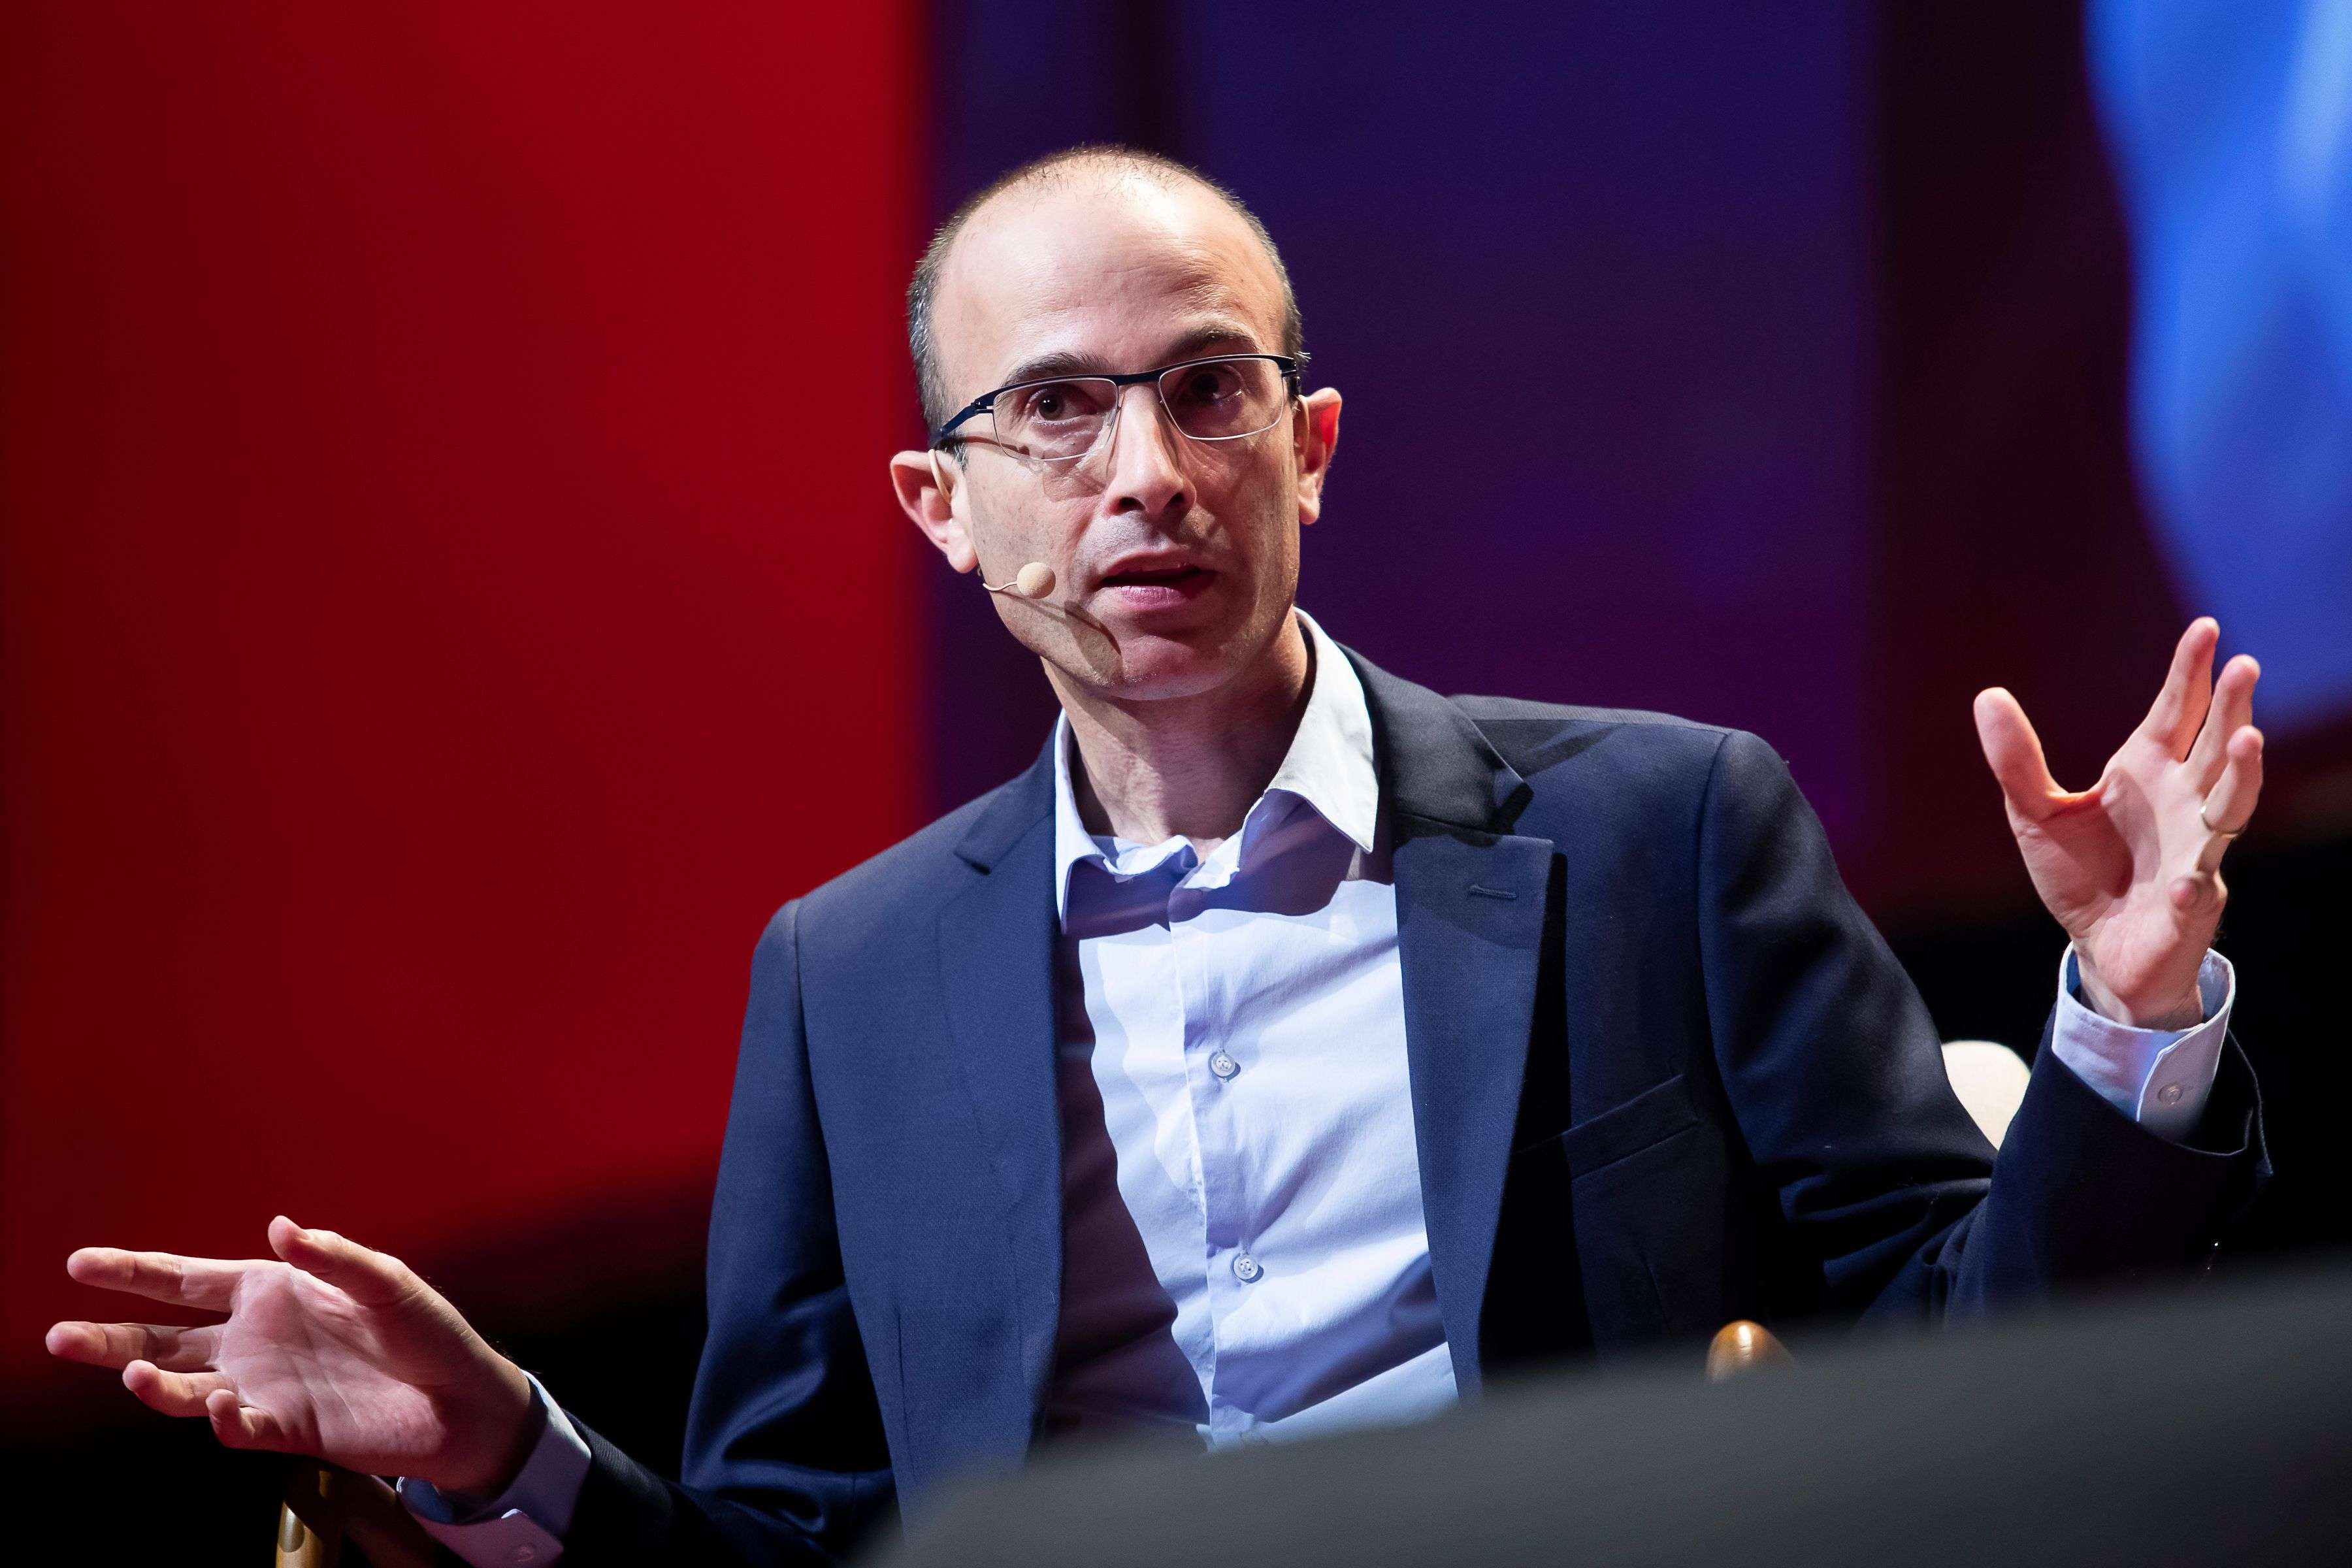 Israeli author Yuval Noah Harari addressed a session on 'How to survive the 21st century' at the World Economic Forum.